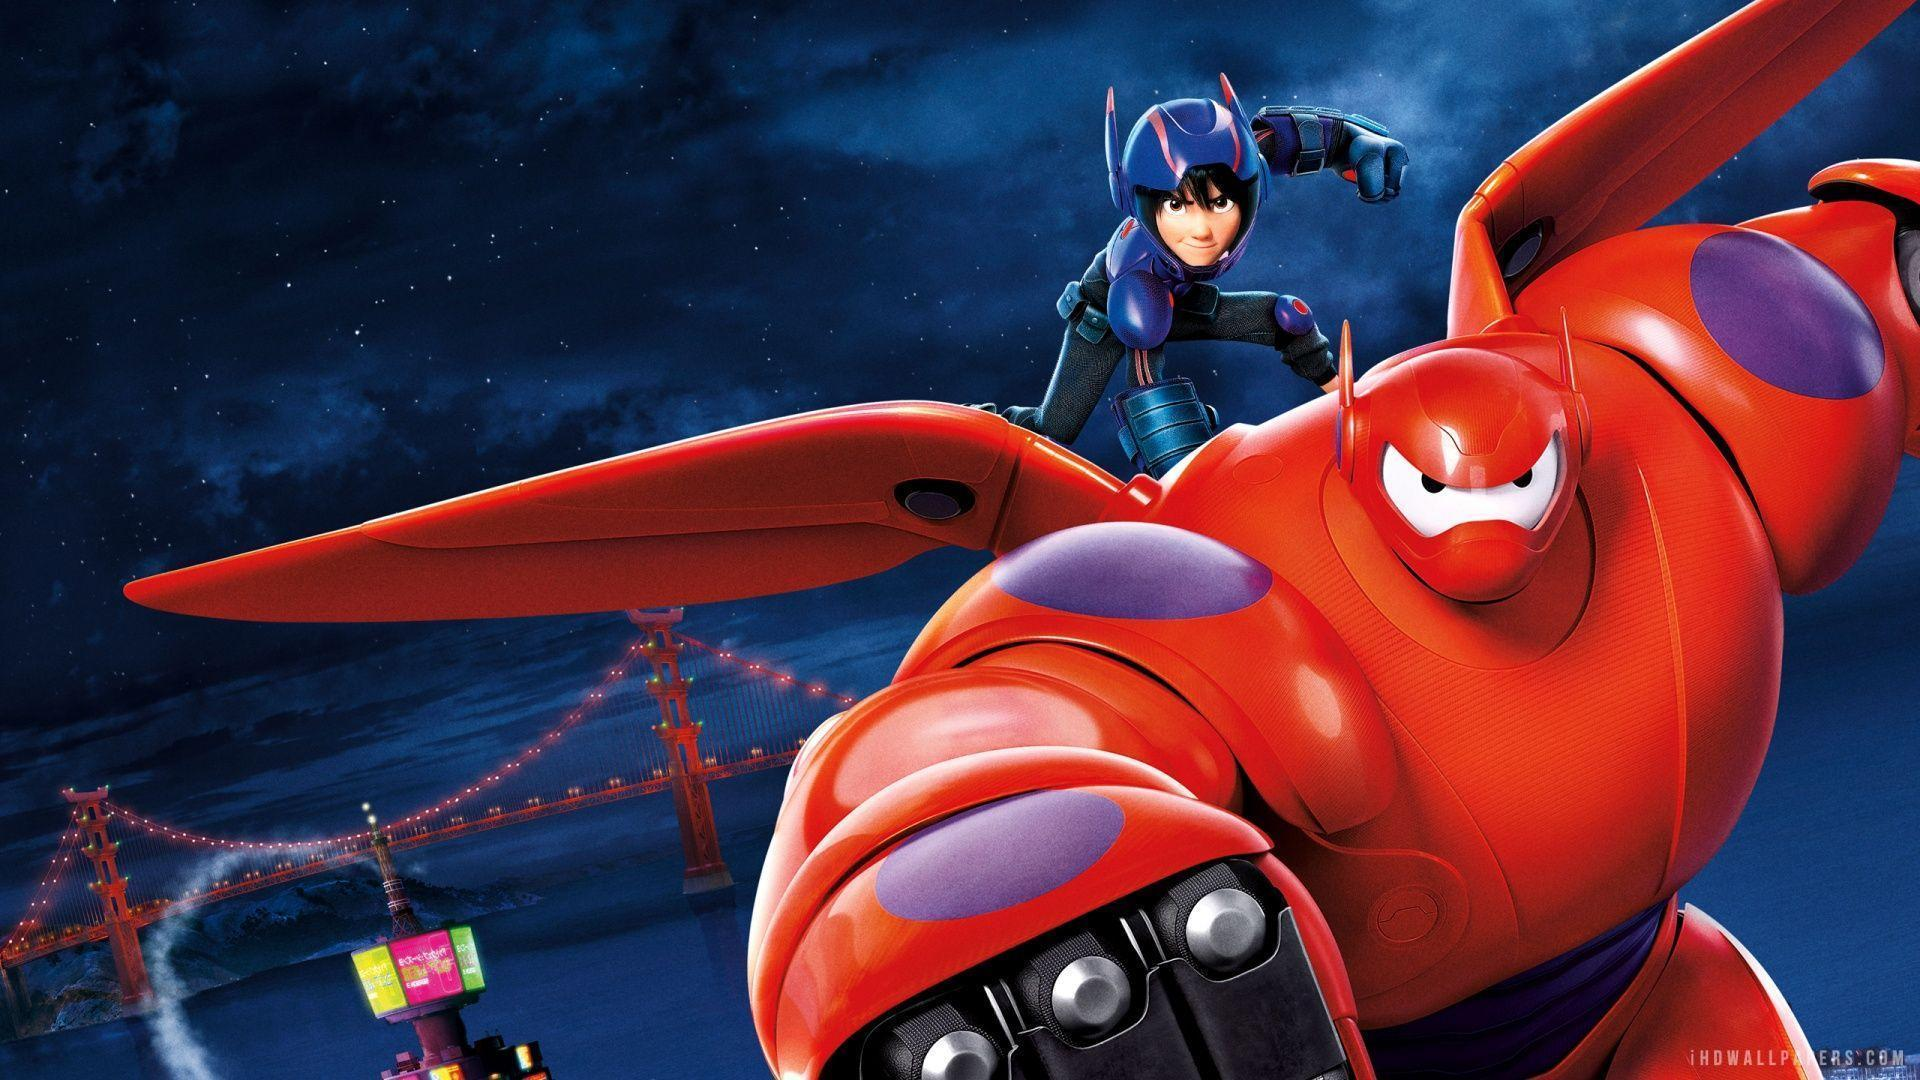 Big hero 6 wallpapers download